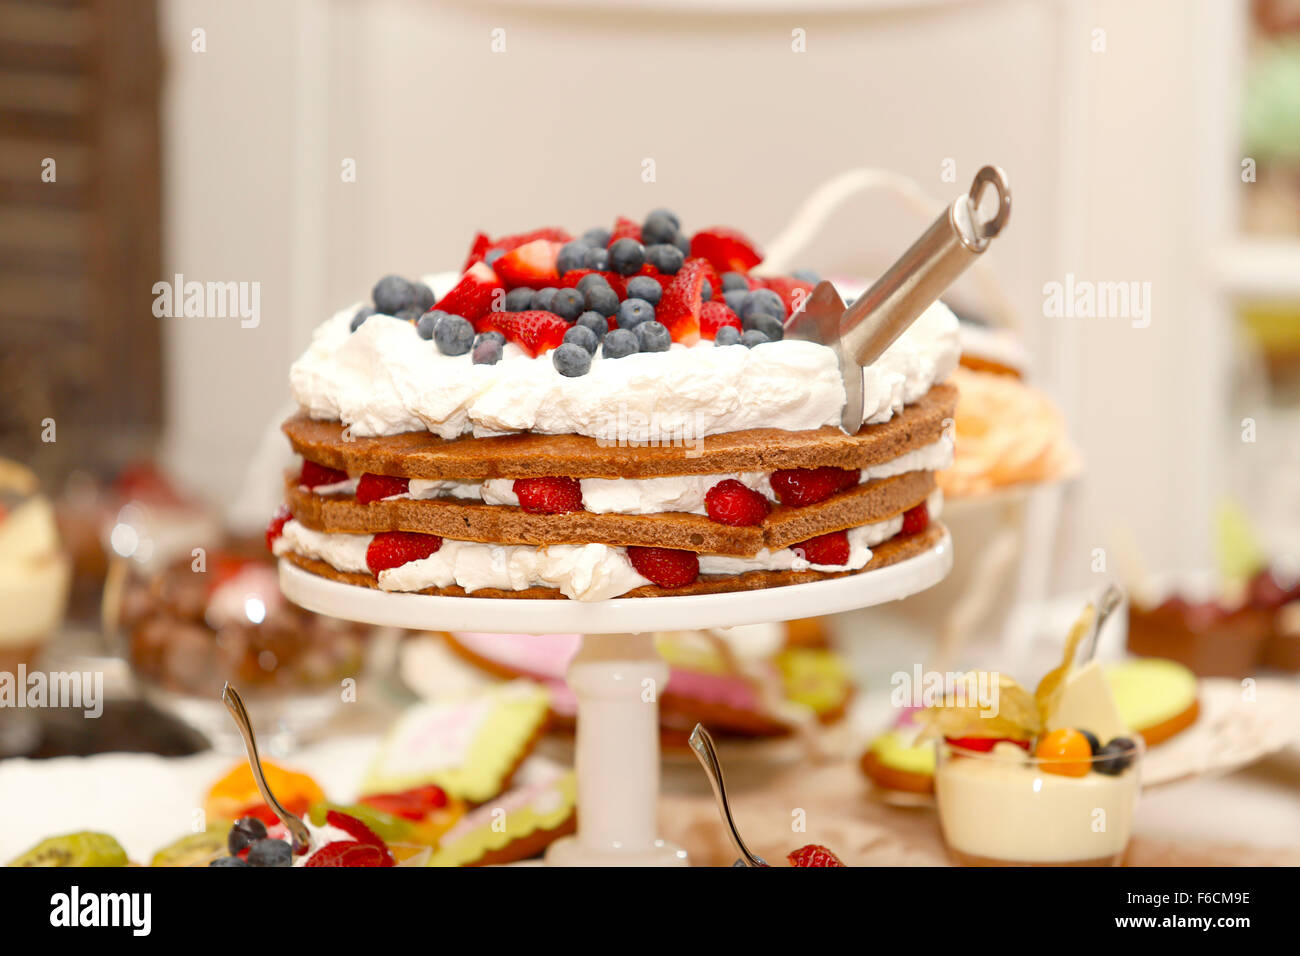 Delicious biscuit cake with strawberries and blueberries on sweet table for wedding party - Stock Image